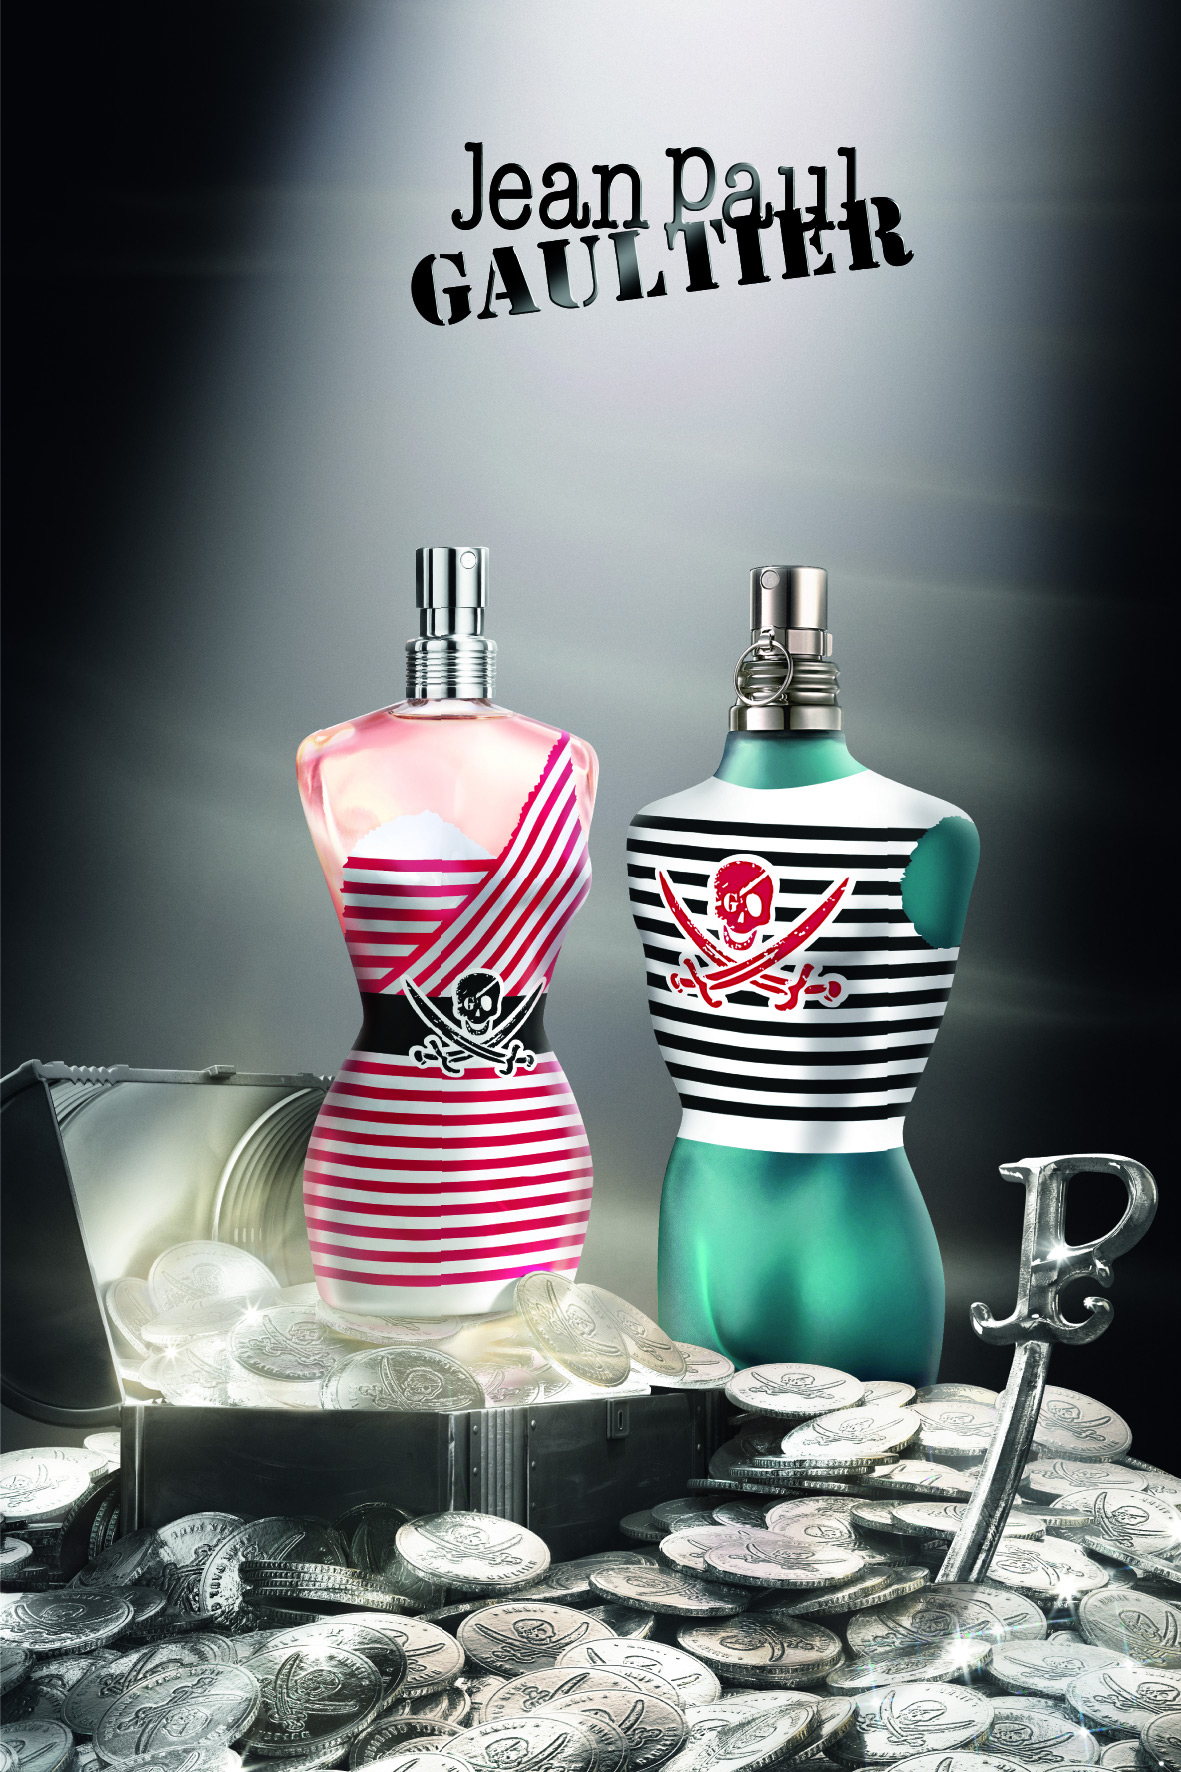 classique pirate edition jean paul gaultier perfume a new fragrance for women 2015. Black Bedroom Furniture Sets. Home Design Ideas